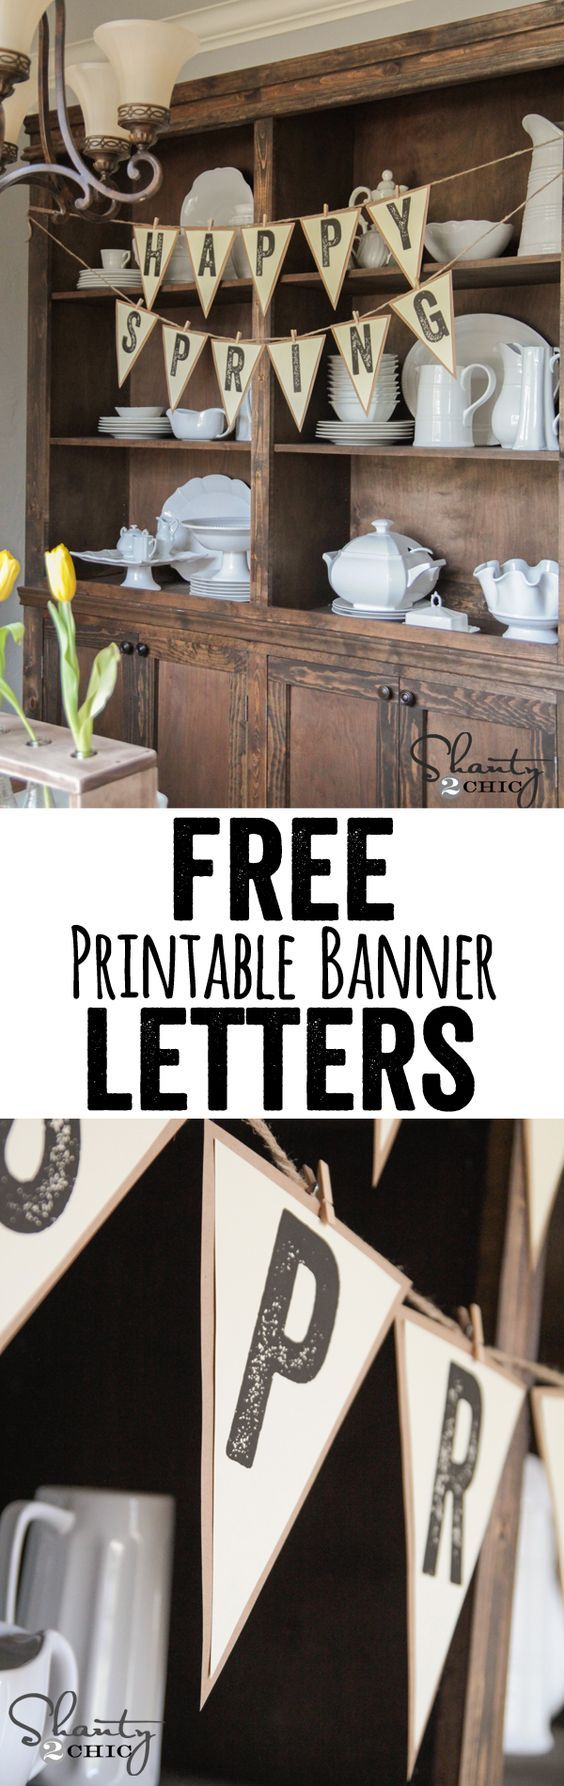 Free Printable Letter Banners 700 best Banners